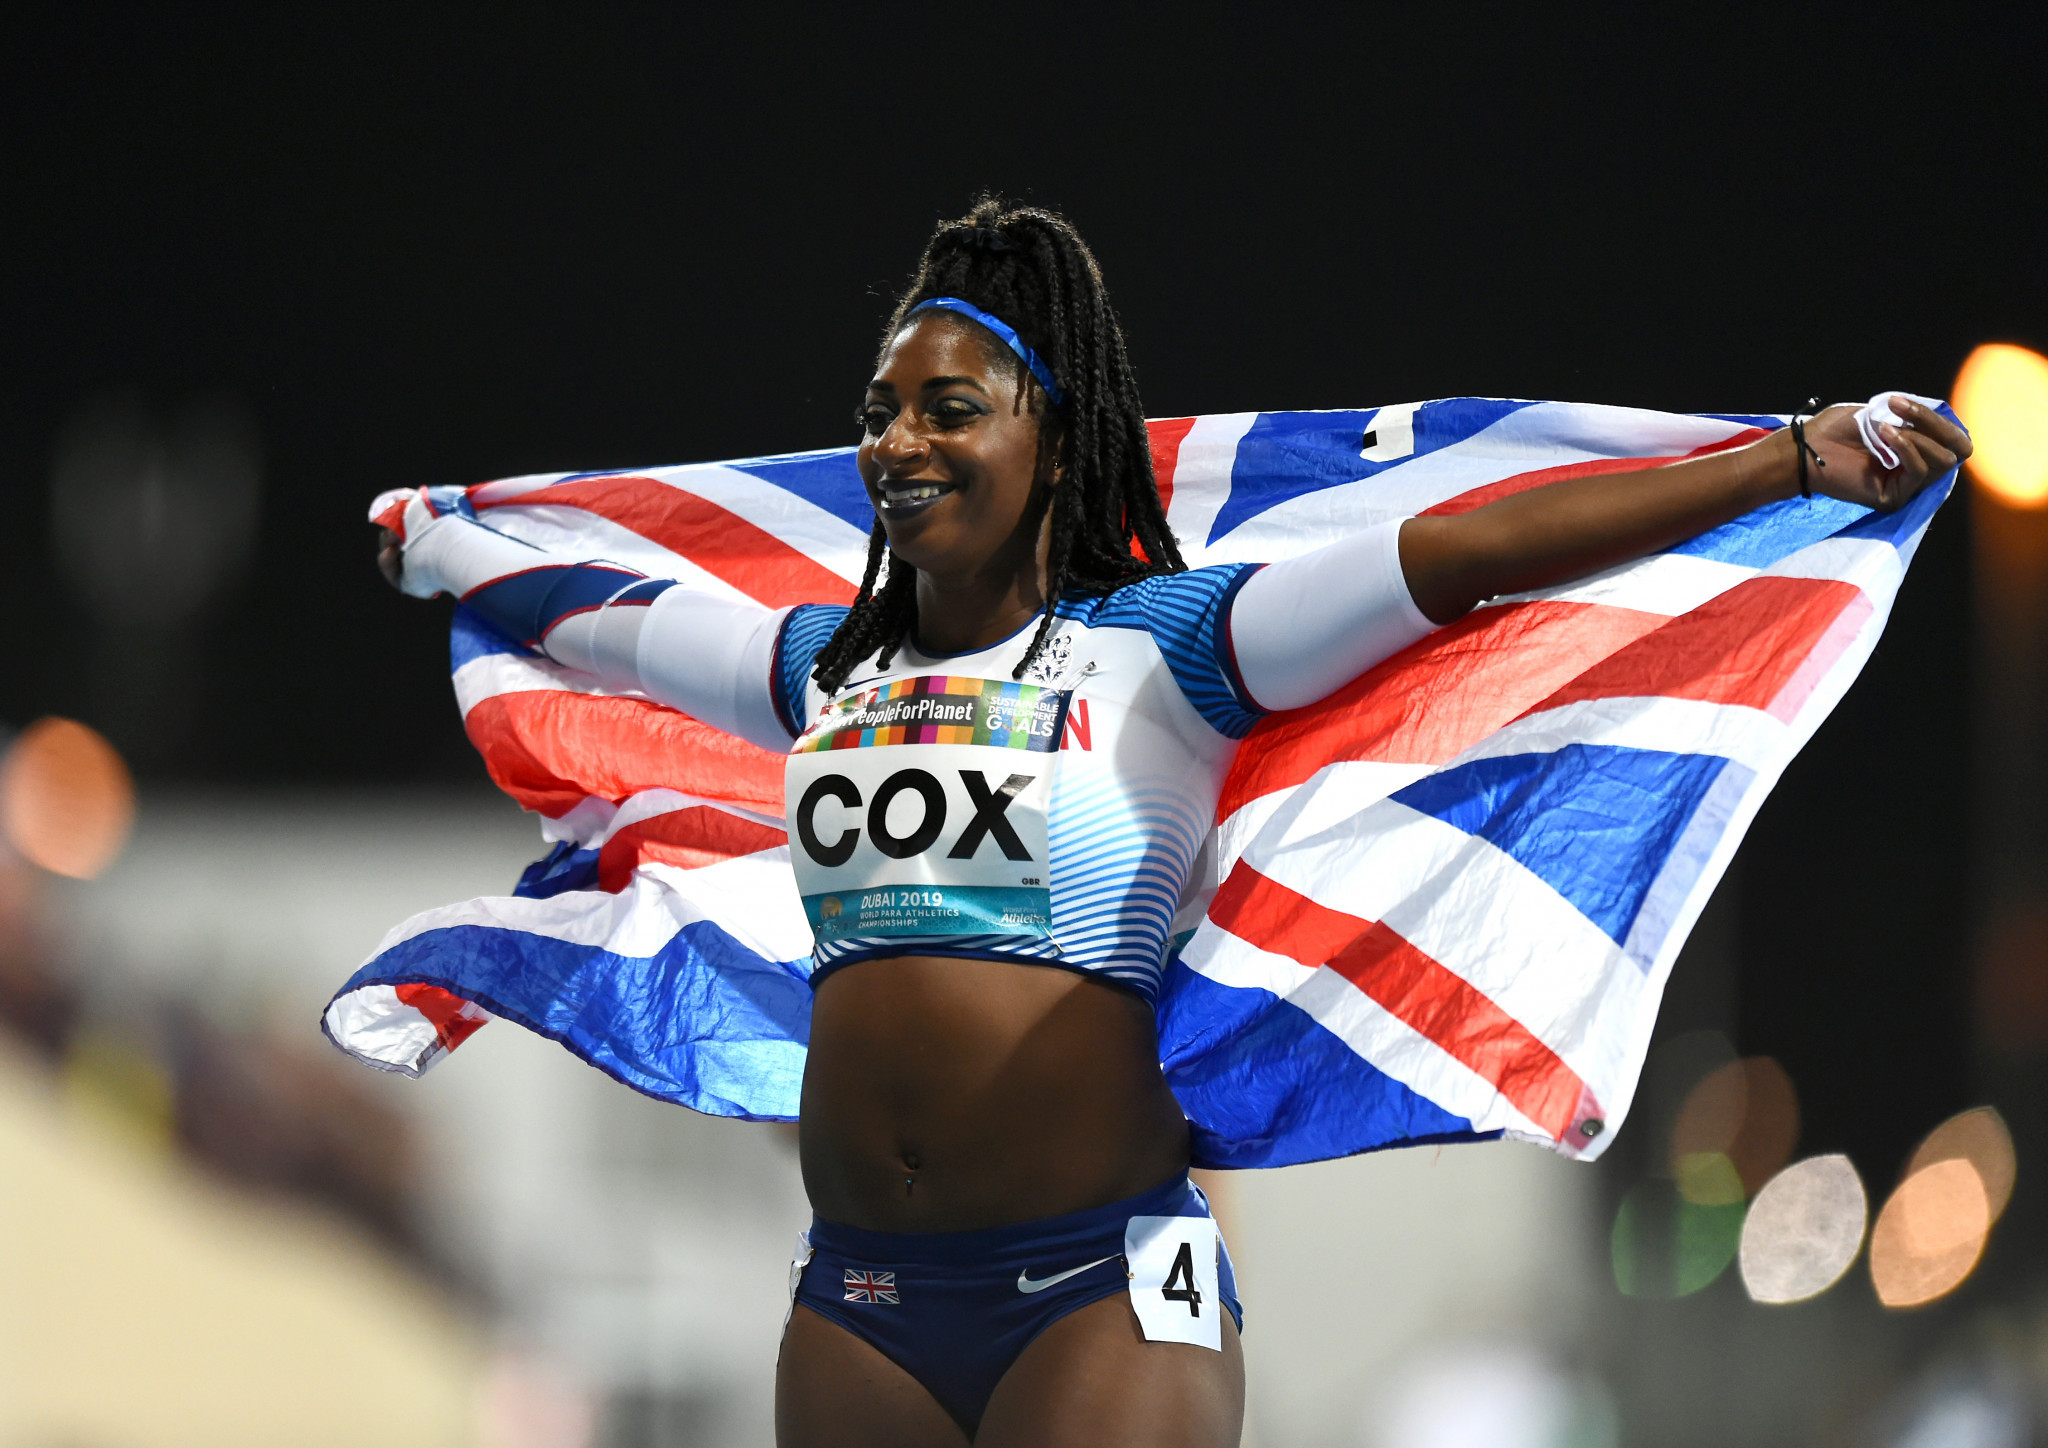 Paralympic champion Cox added to British Athletics Equality, Diversity and Inclusion Advocates Group